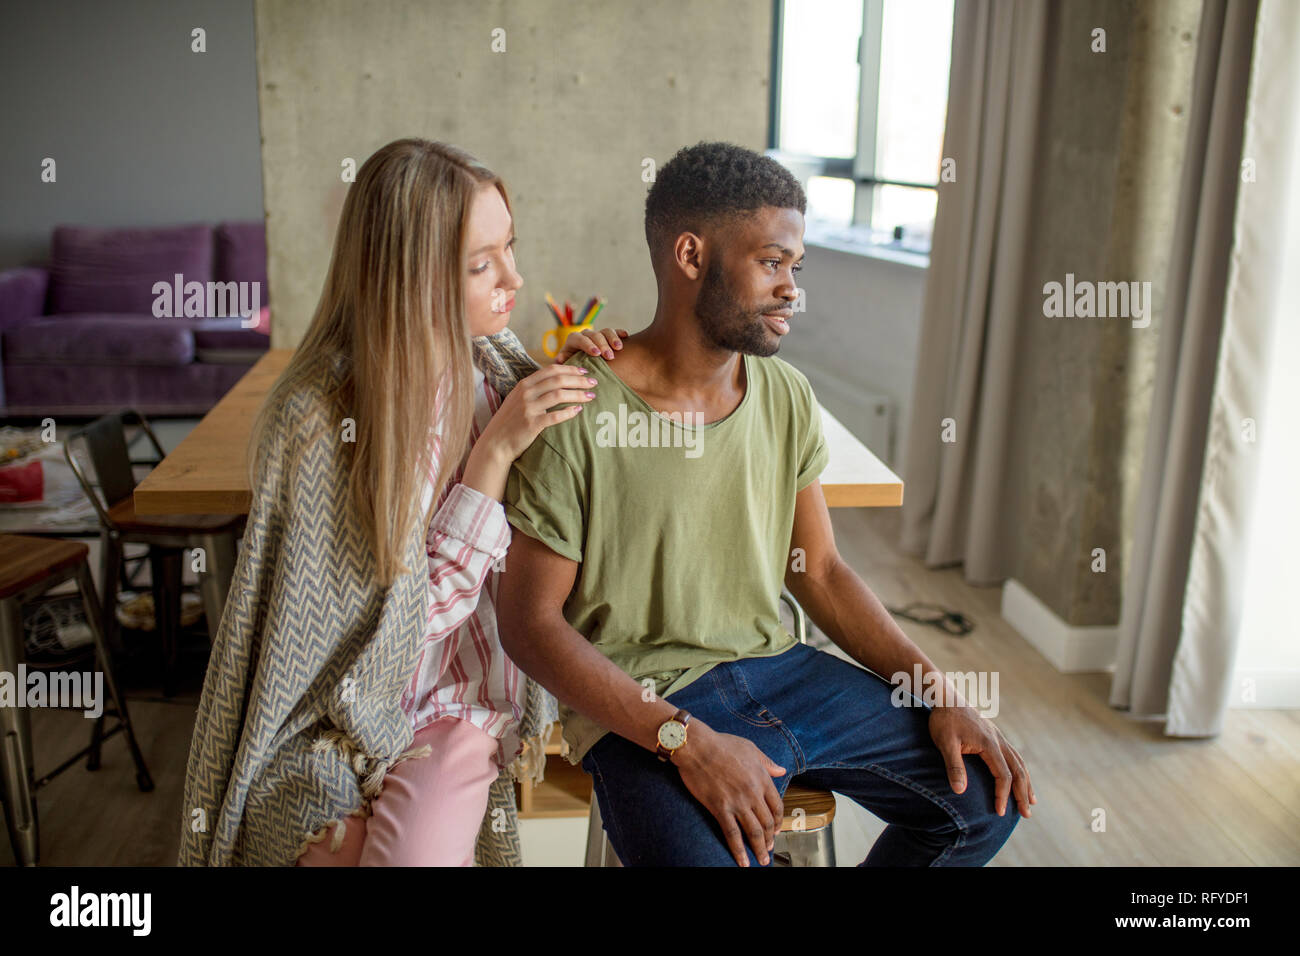 Relationship problems concept. Young mixed race couple quarelling at home. - Stock Image